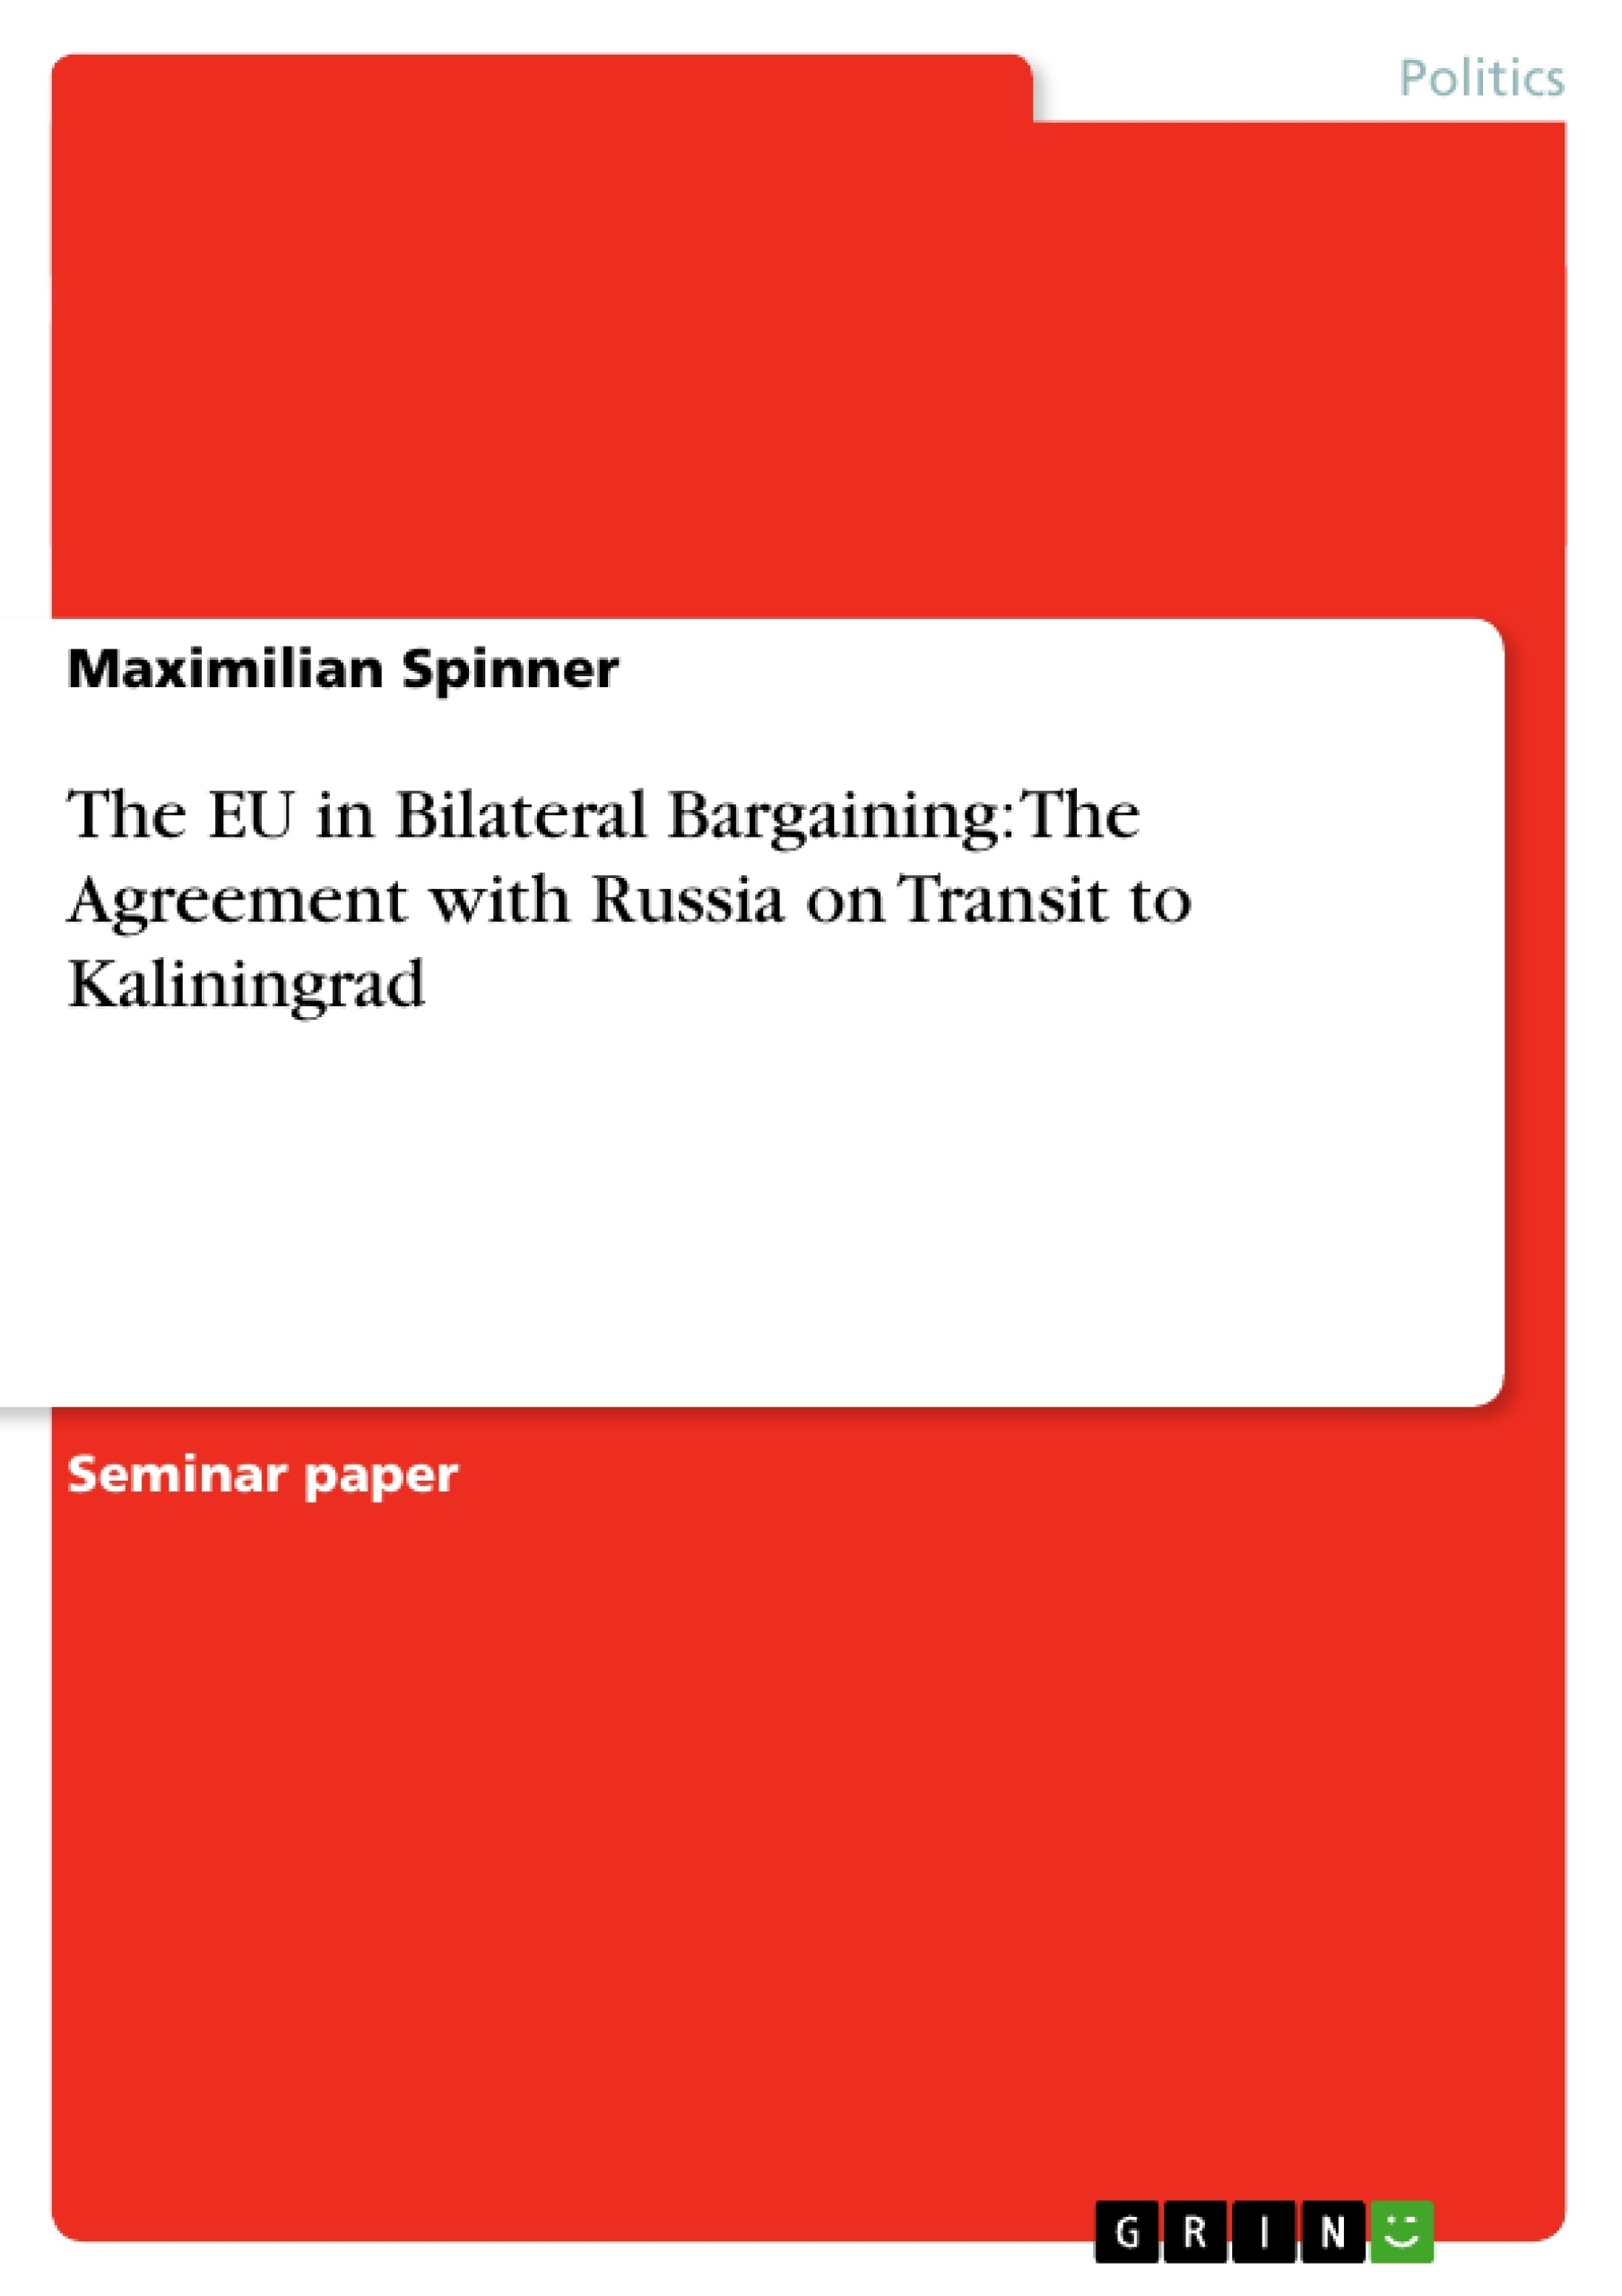 Title: The EU in Bilateral Bargaining: The Agreement with Russia on Transit to Kaliningrad